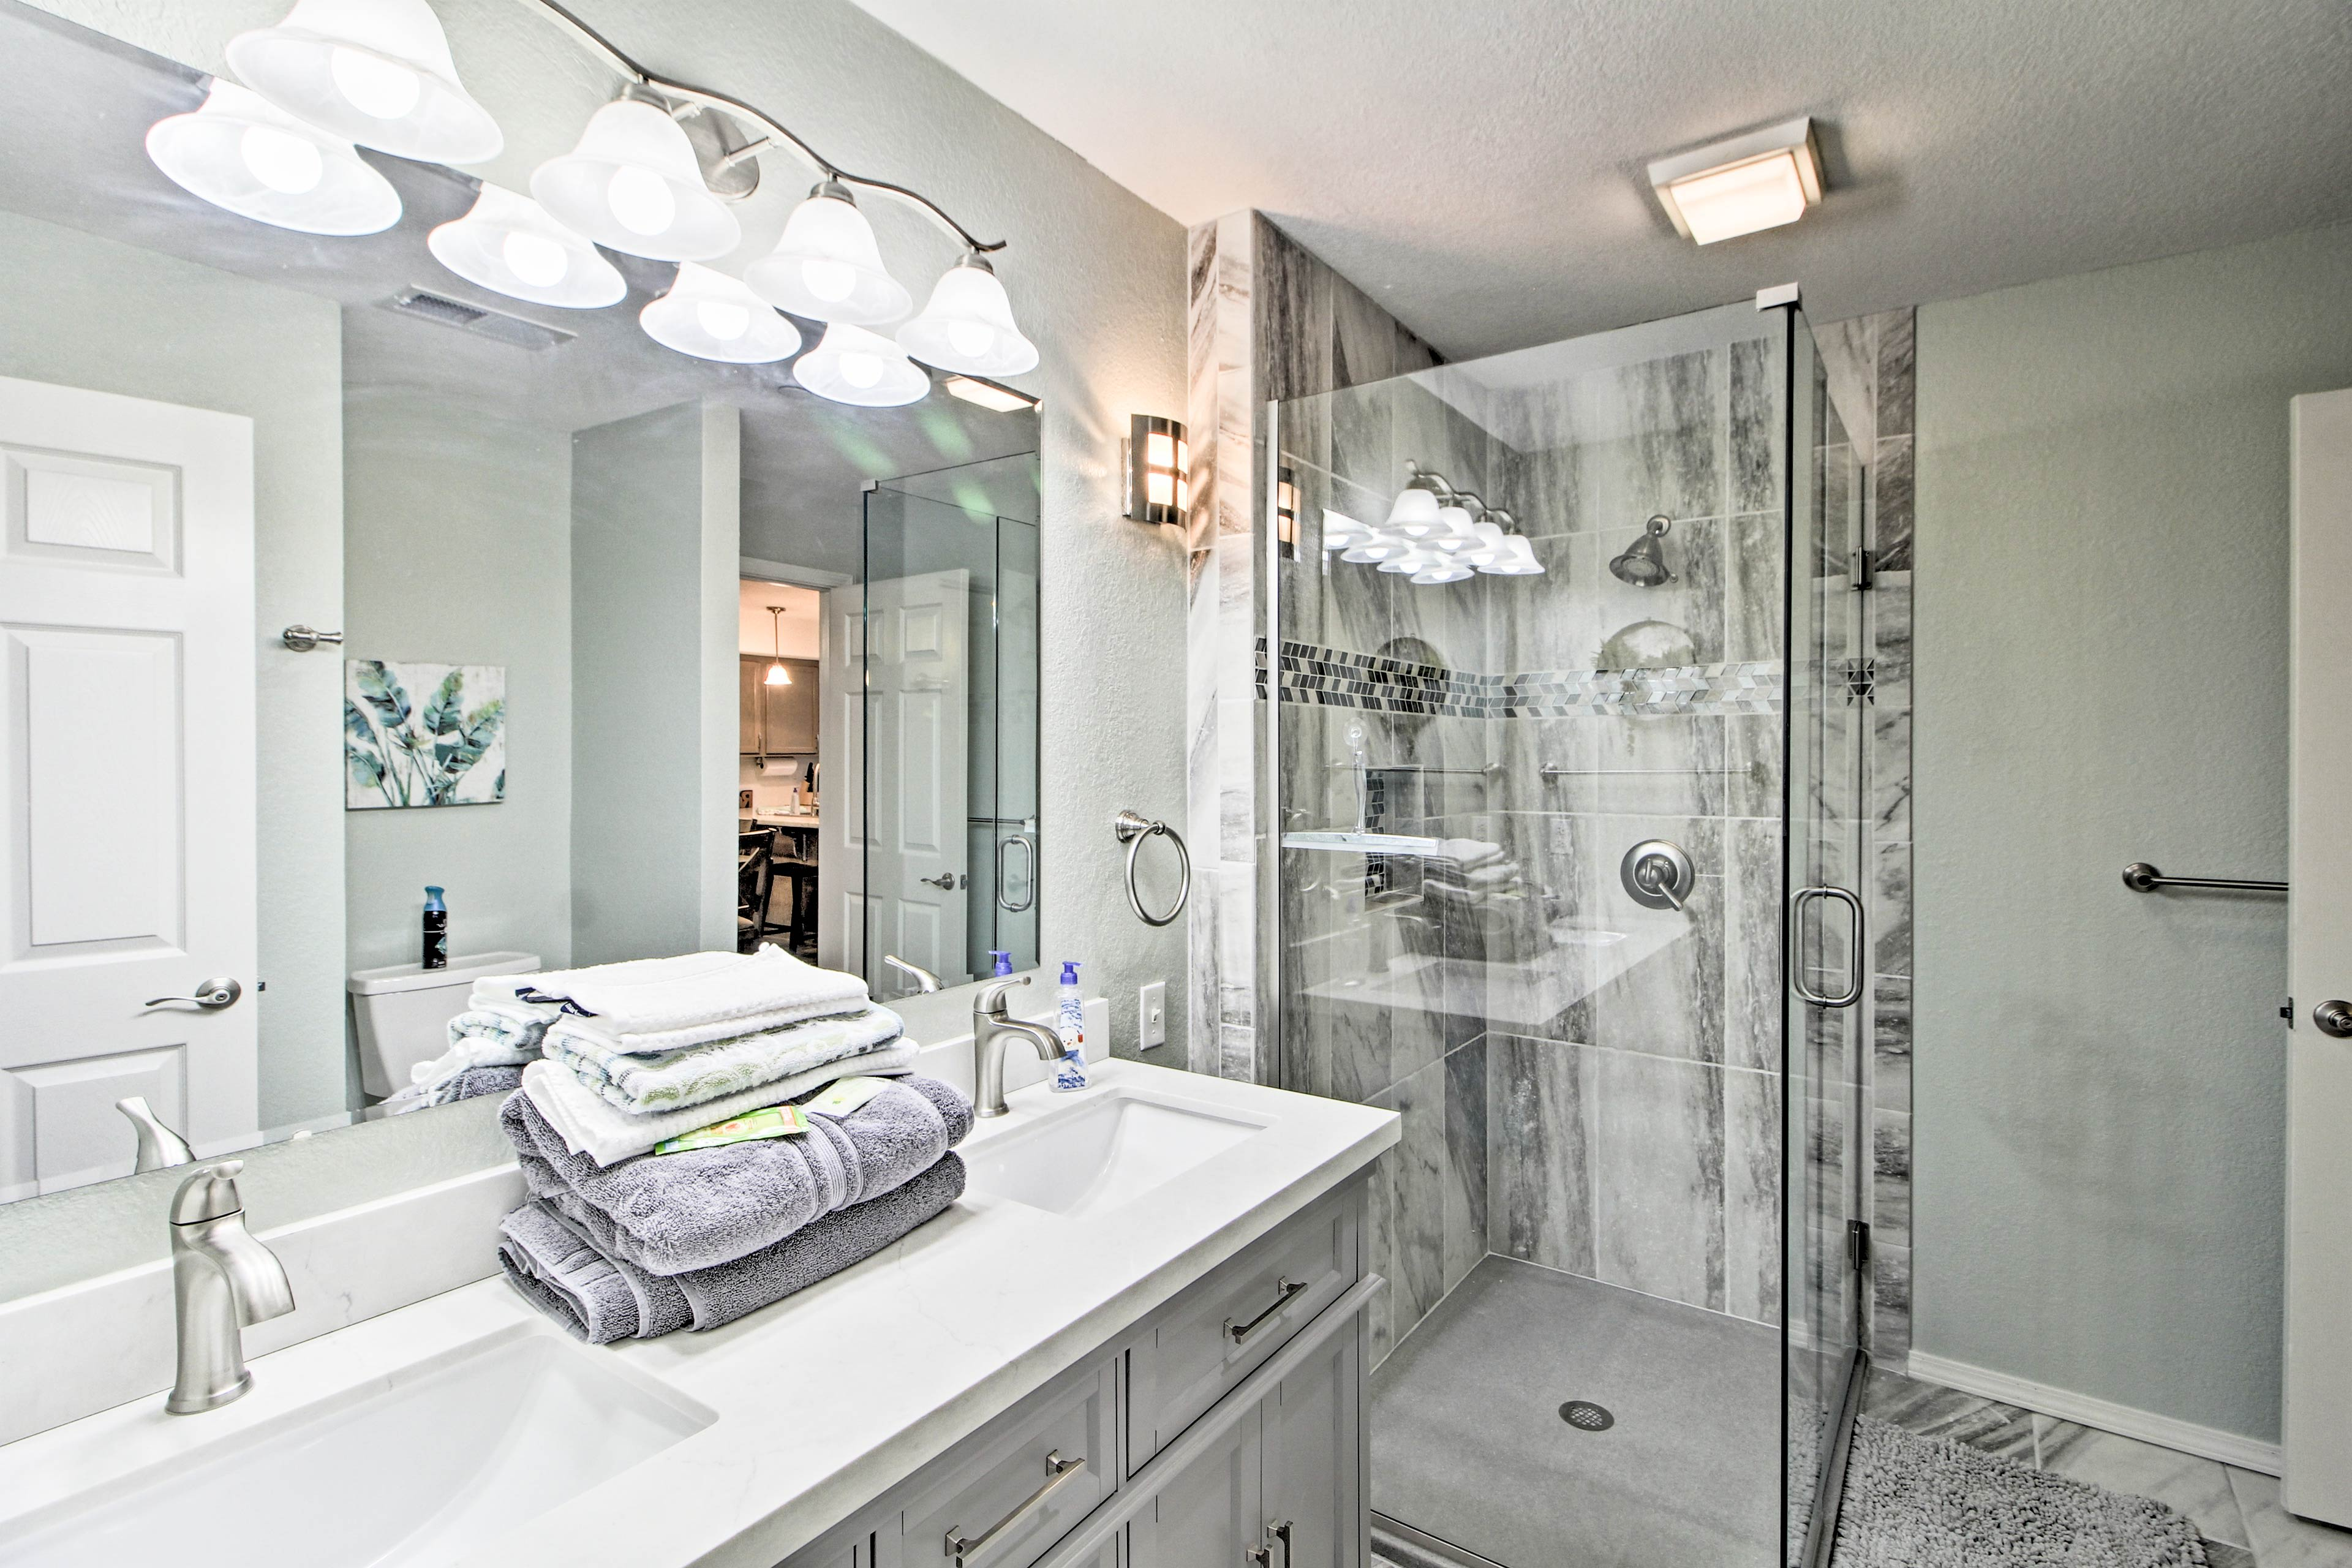 Rinse off the lake water & sunscreen in the lavish walk-in shower.